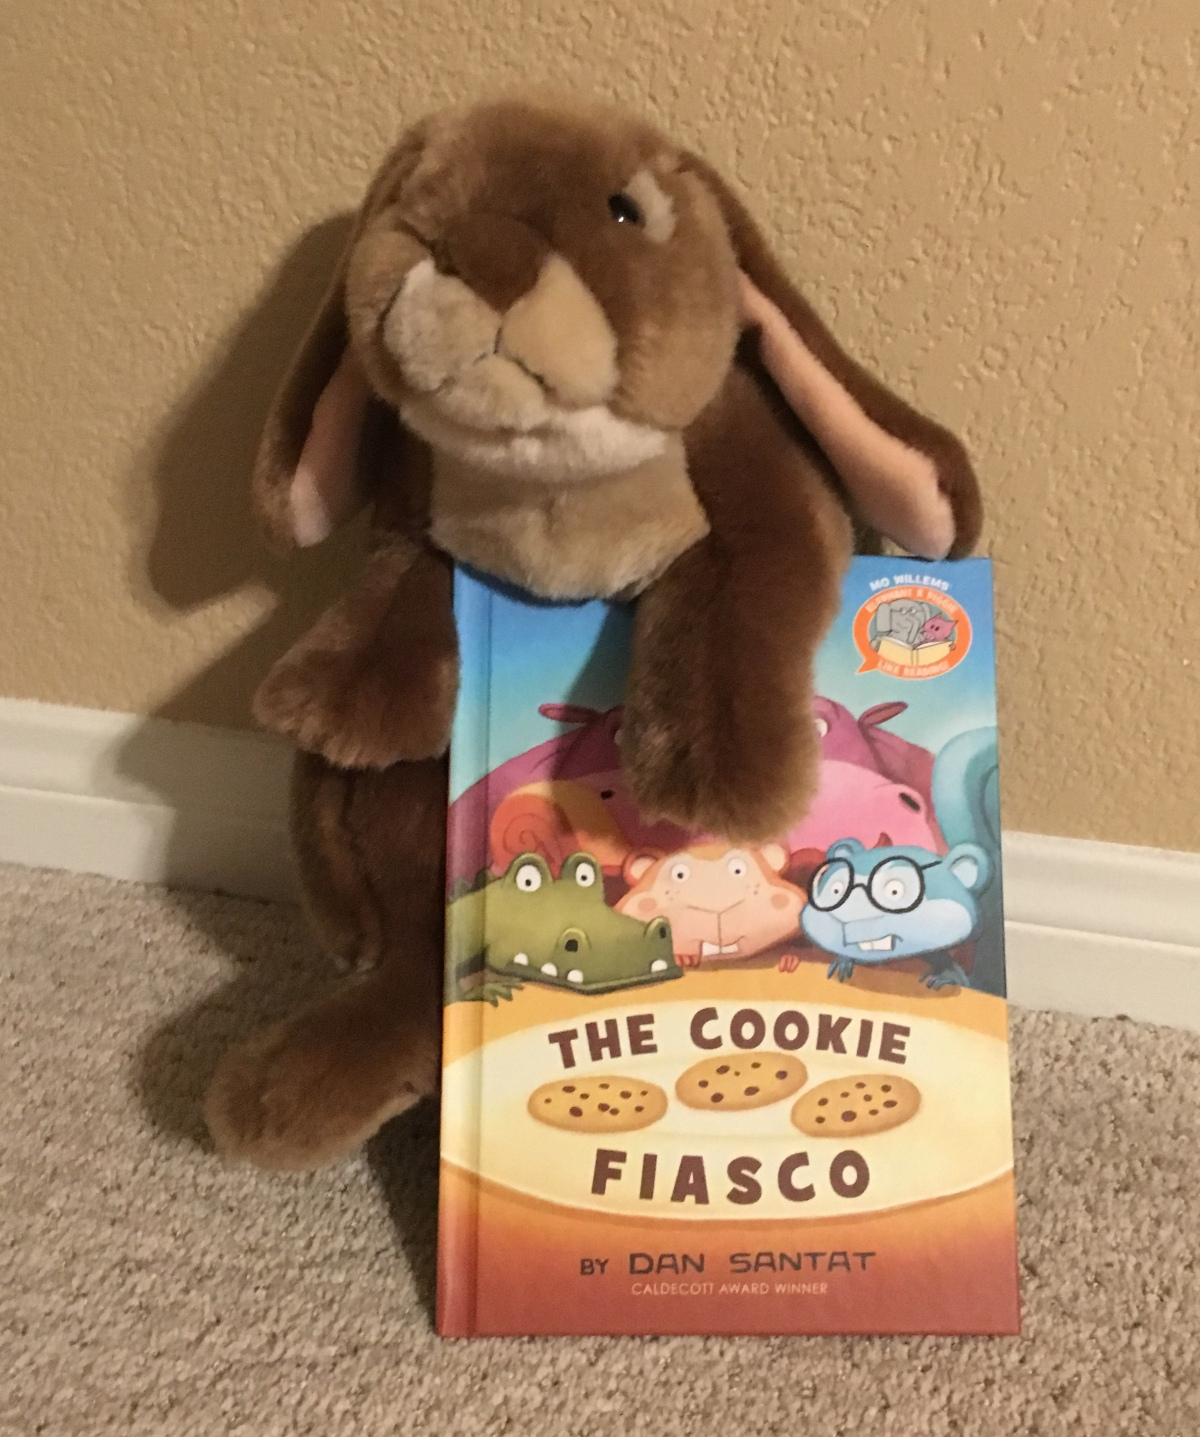 Caramel reviews The Cookie Fiasco by Dan Santat